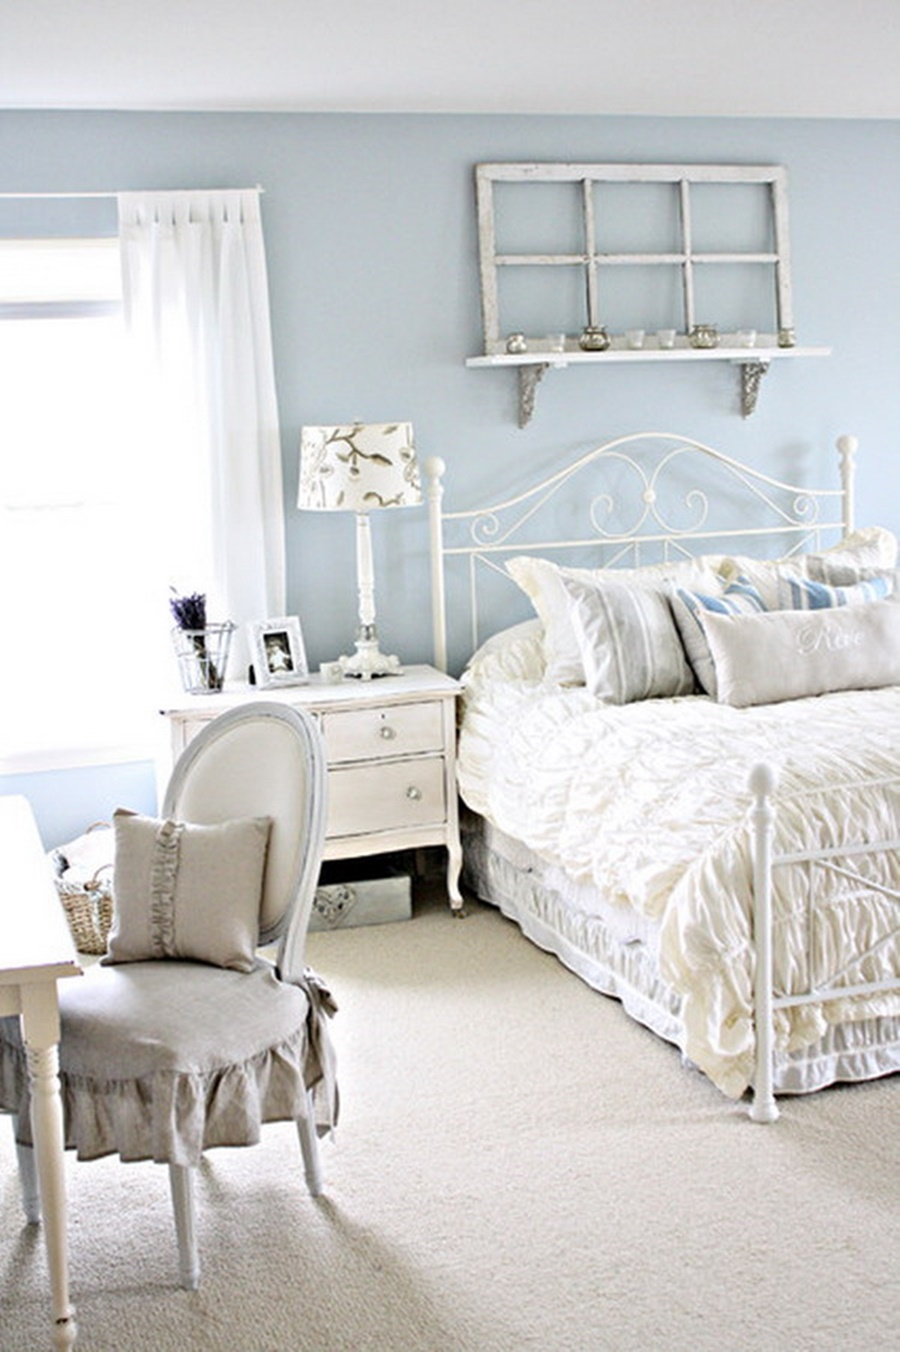 Modern Chic Decor Royals Courage Shabby Chic Bedroom Ideas